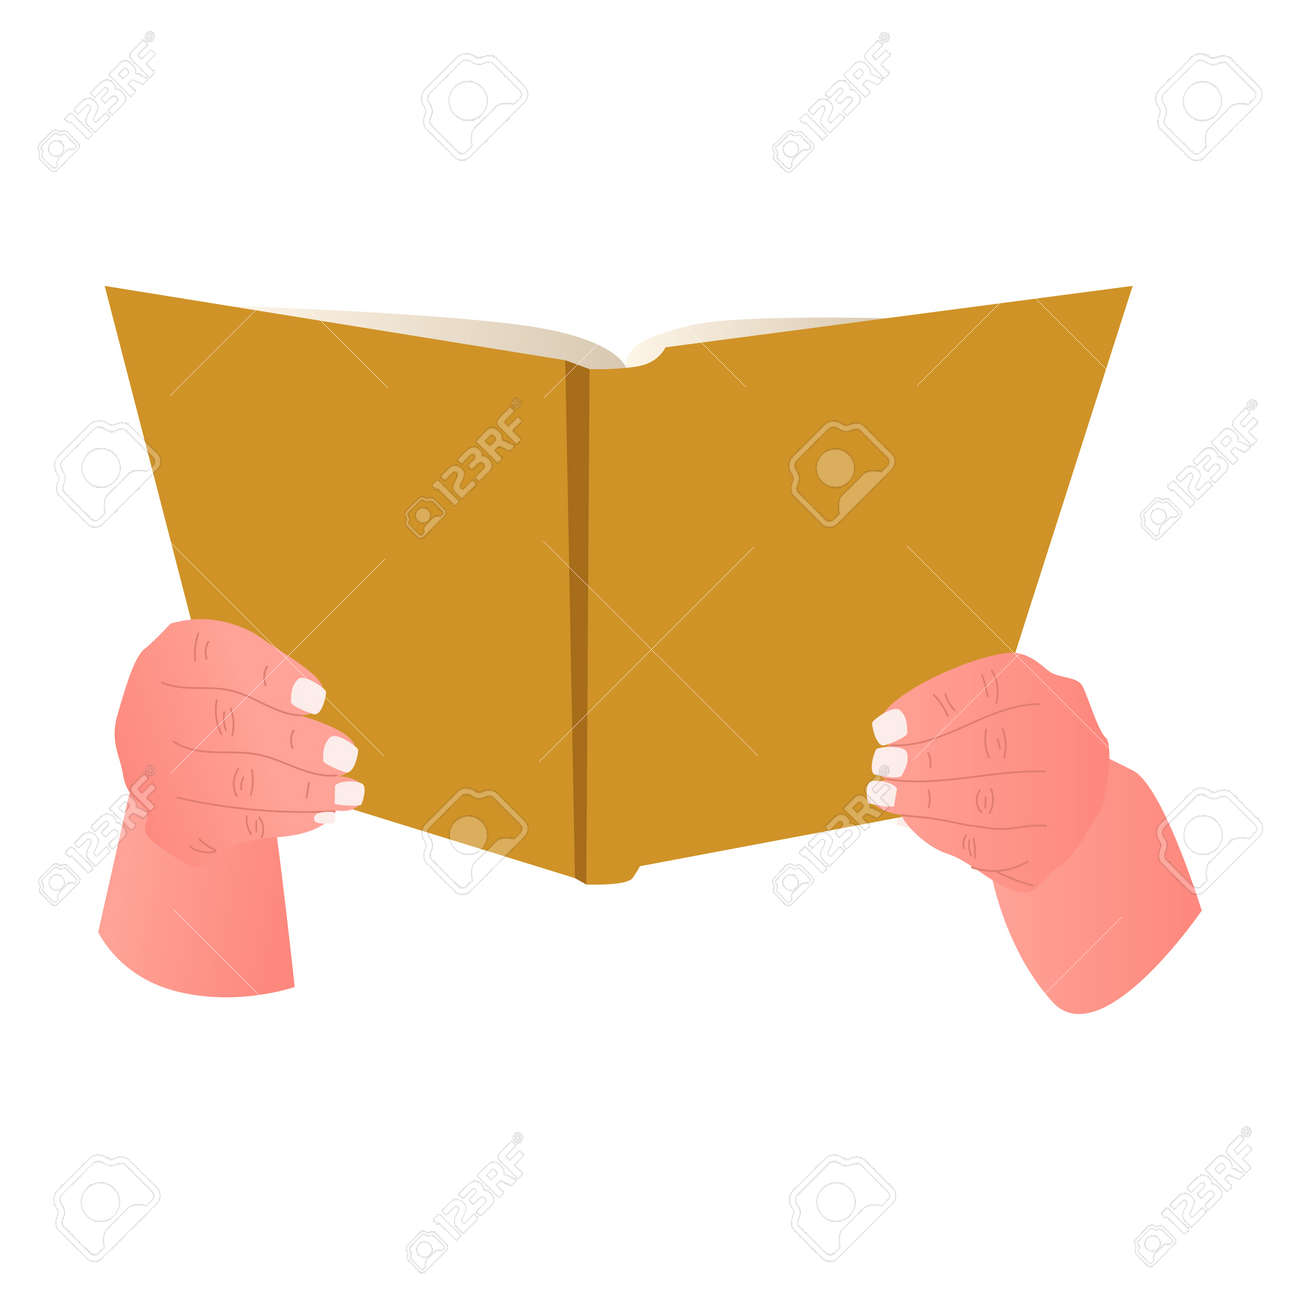 Hand with book isolated on white background. Open book in people hands, education concept. - 172108969